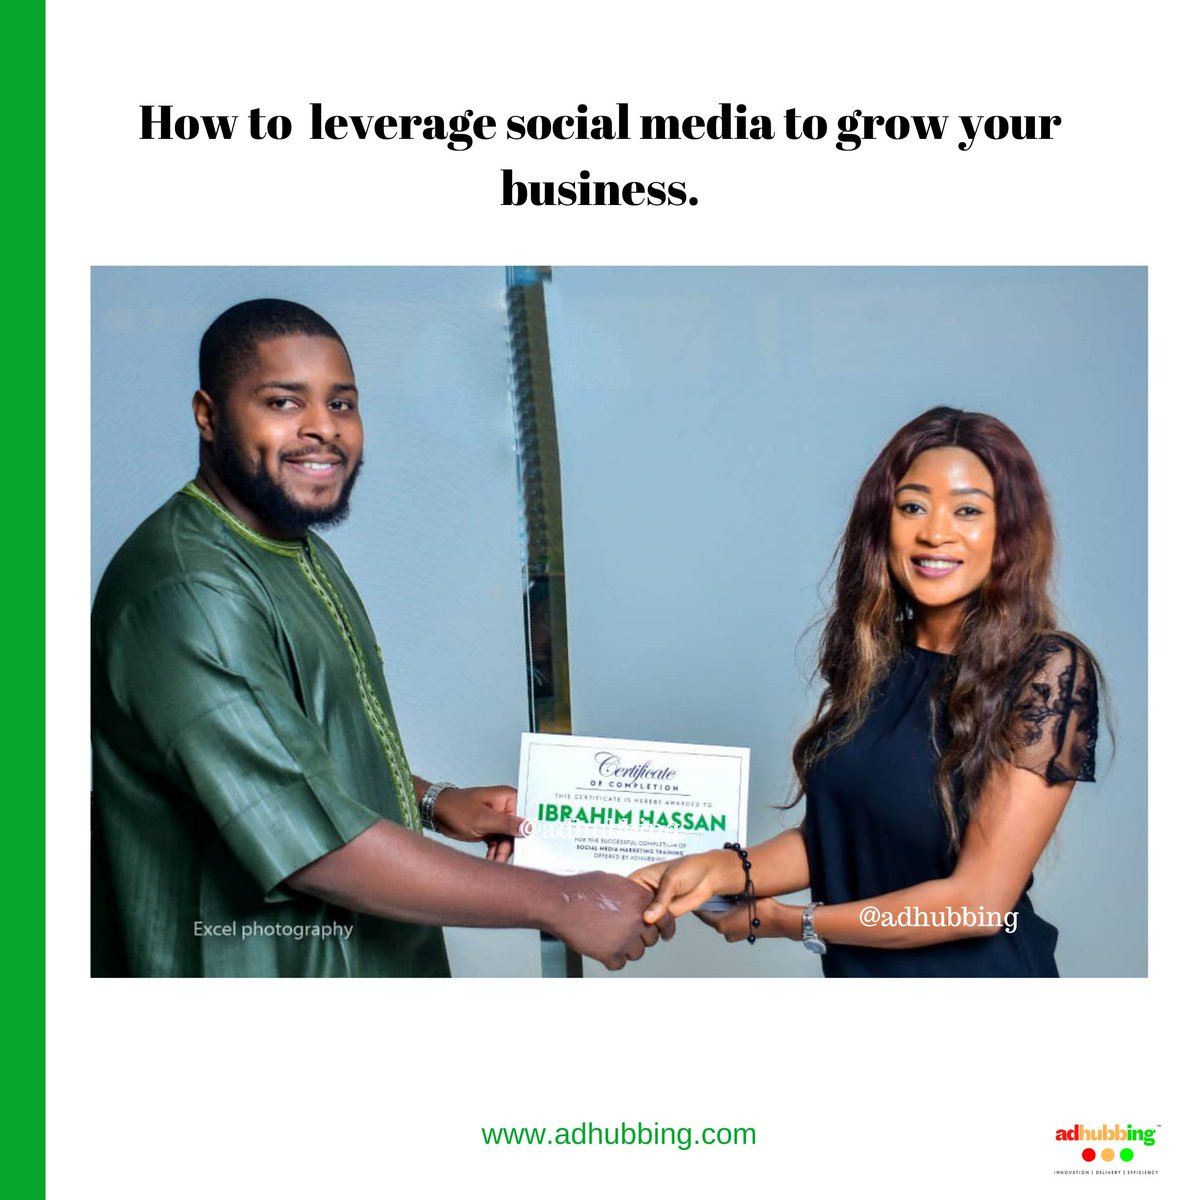 Are you ready to learn how to leverage social media for your business? Click the link in our bio now and join our FREE Masterclass. #adhubbing   #naijabusiness#naijastartups#abujabusiness#portharcourtbusiness#owerri#portharcourtfashion#ibadan#naijabiz#abuja#abujabusiness pic.twitter.com/Ybk6sT9YG2